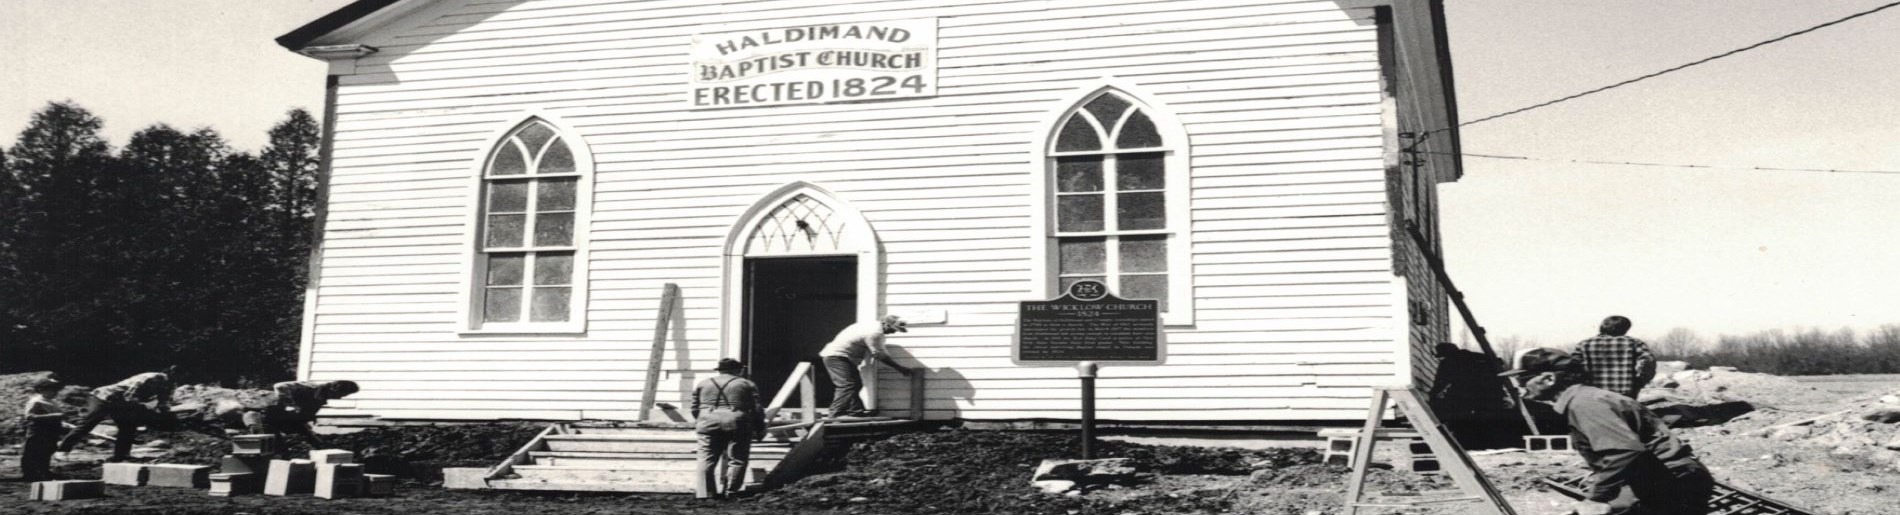 old church building being built